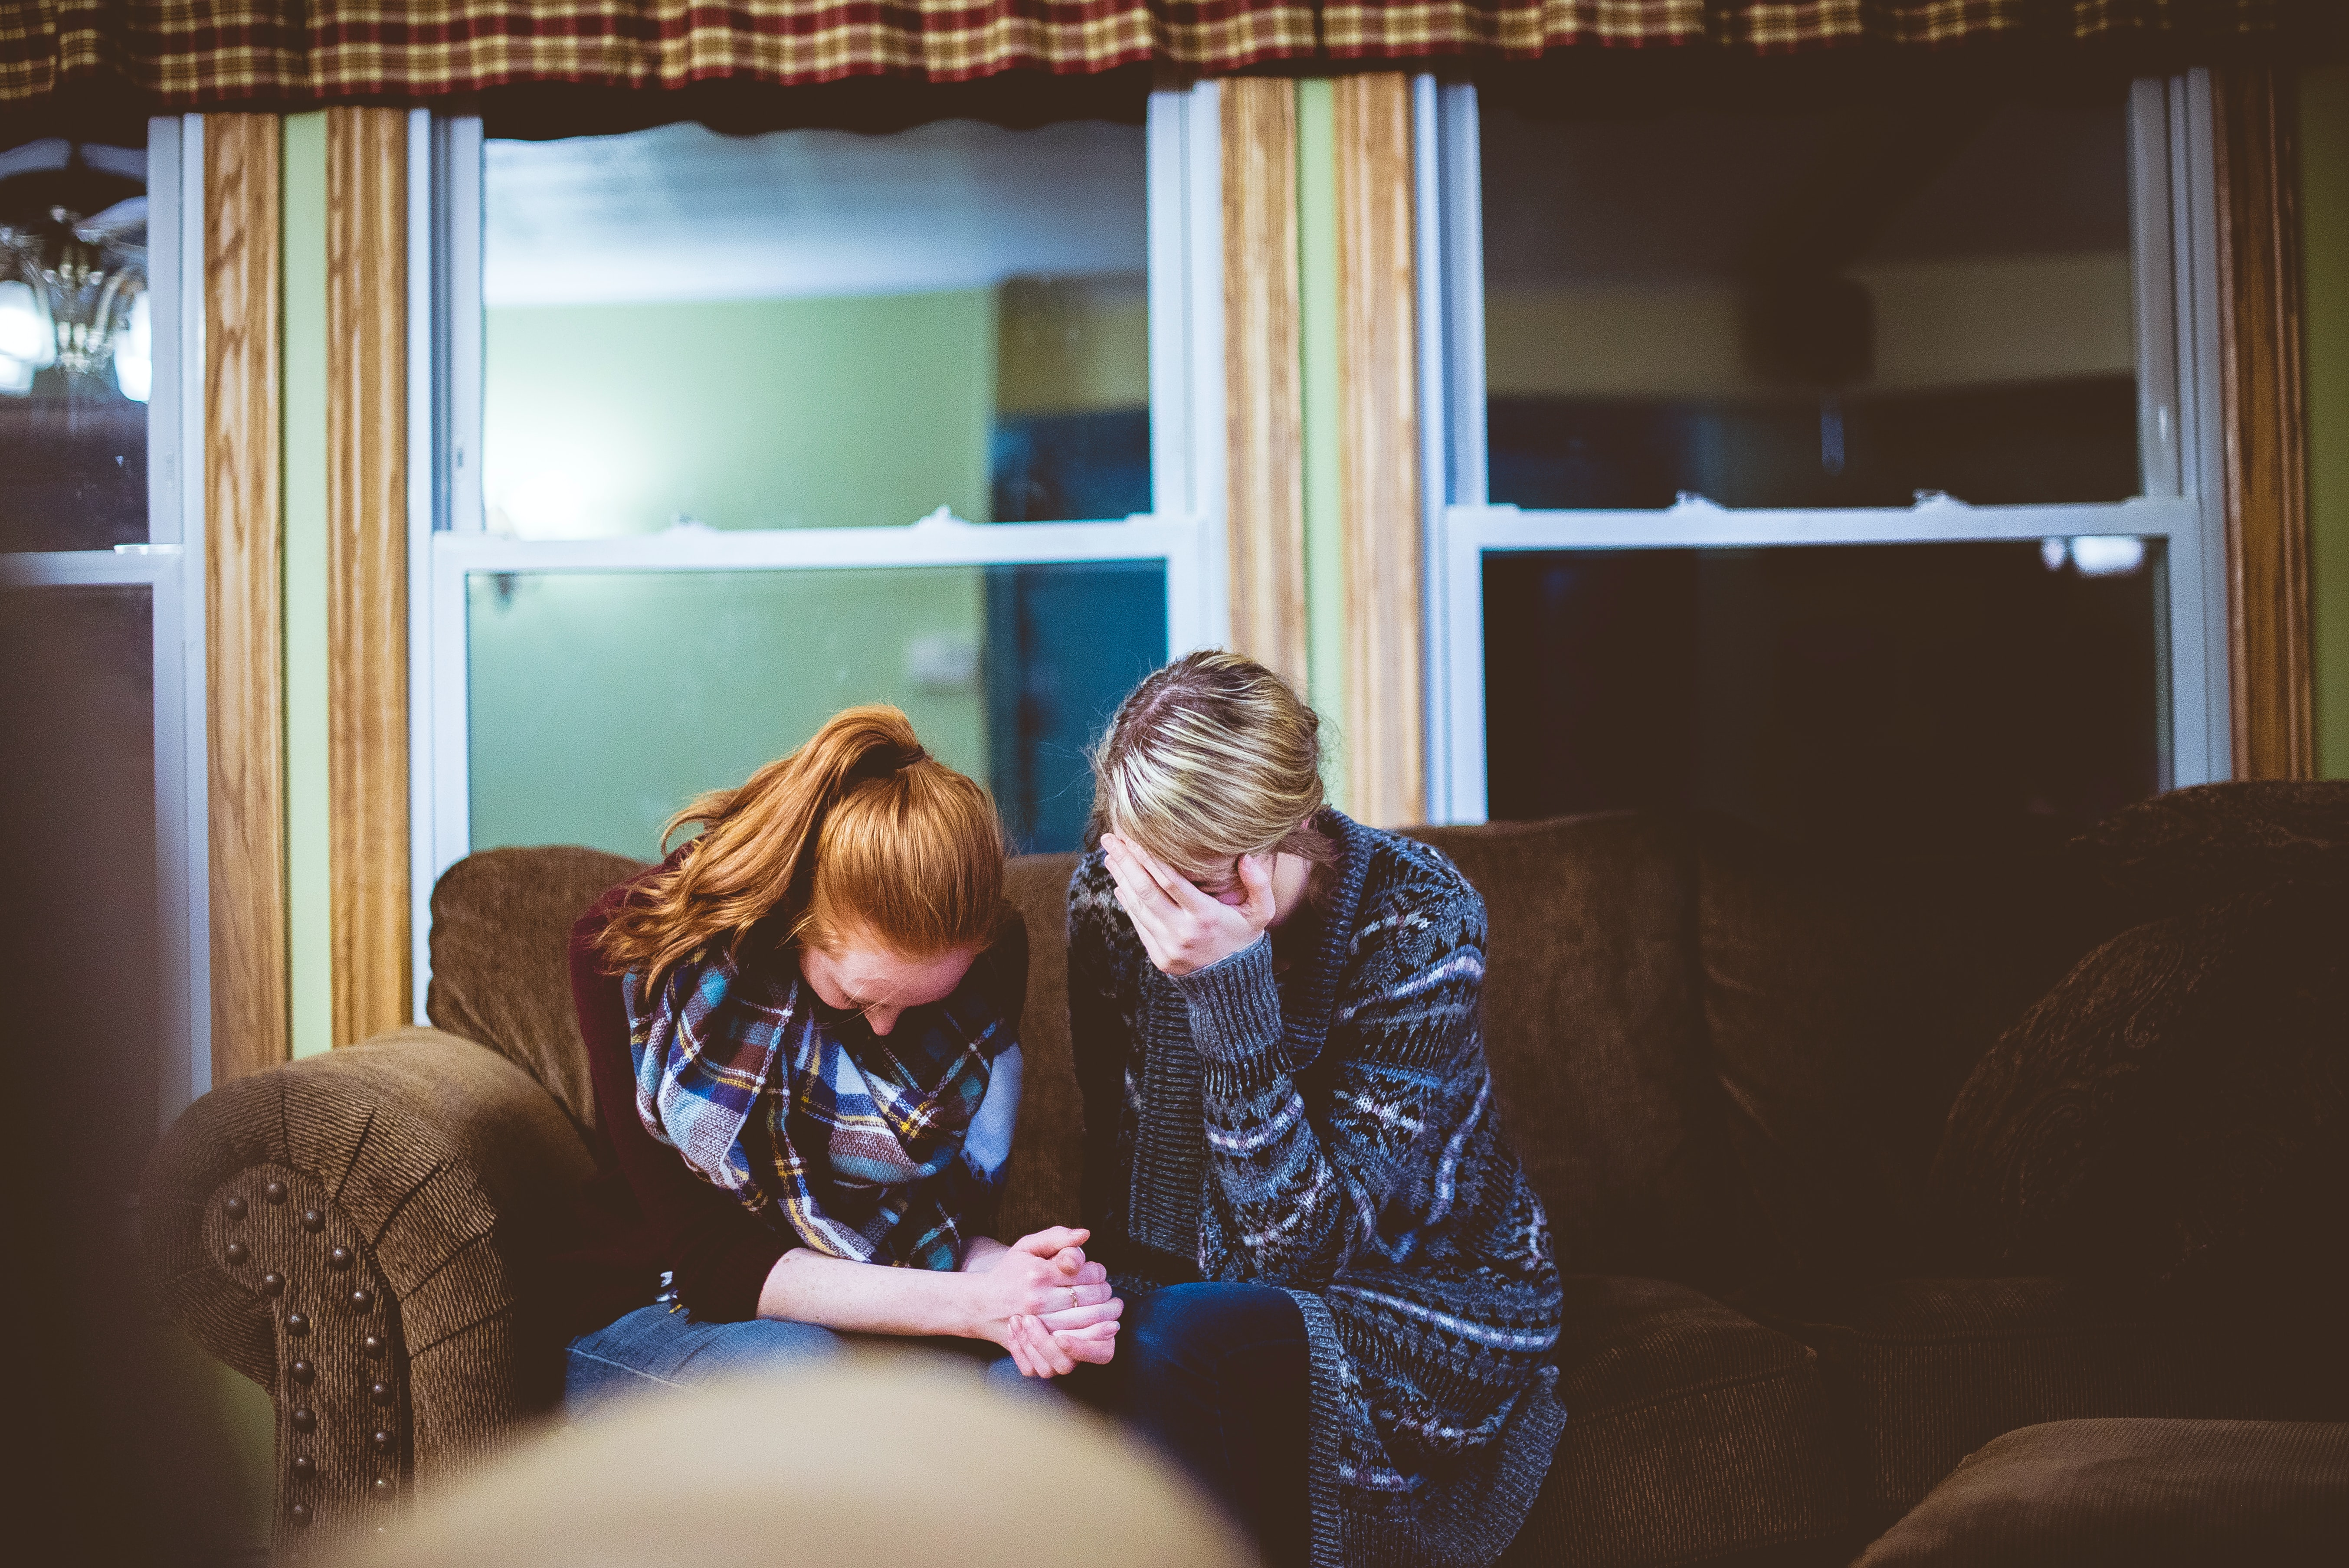 How to show Christ's love to a grieving friend